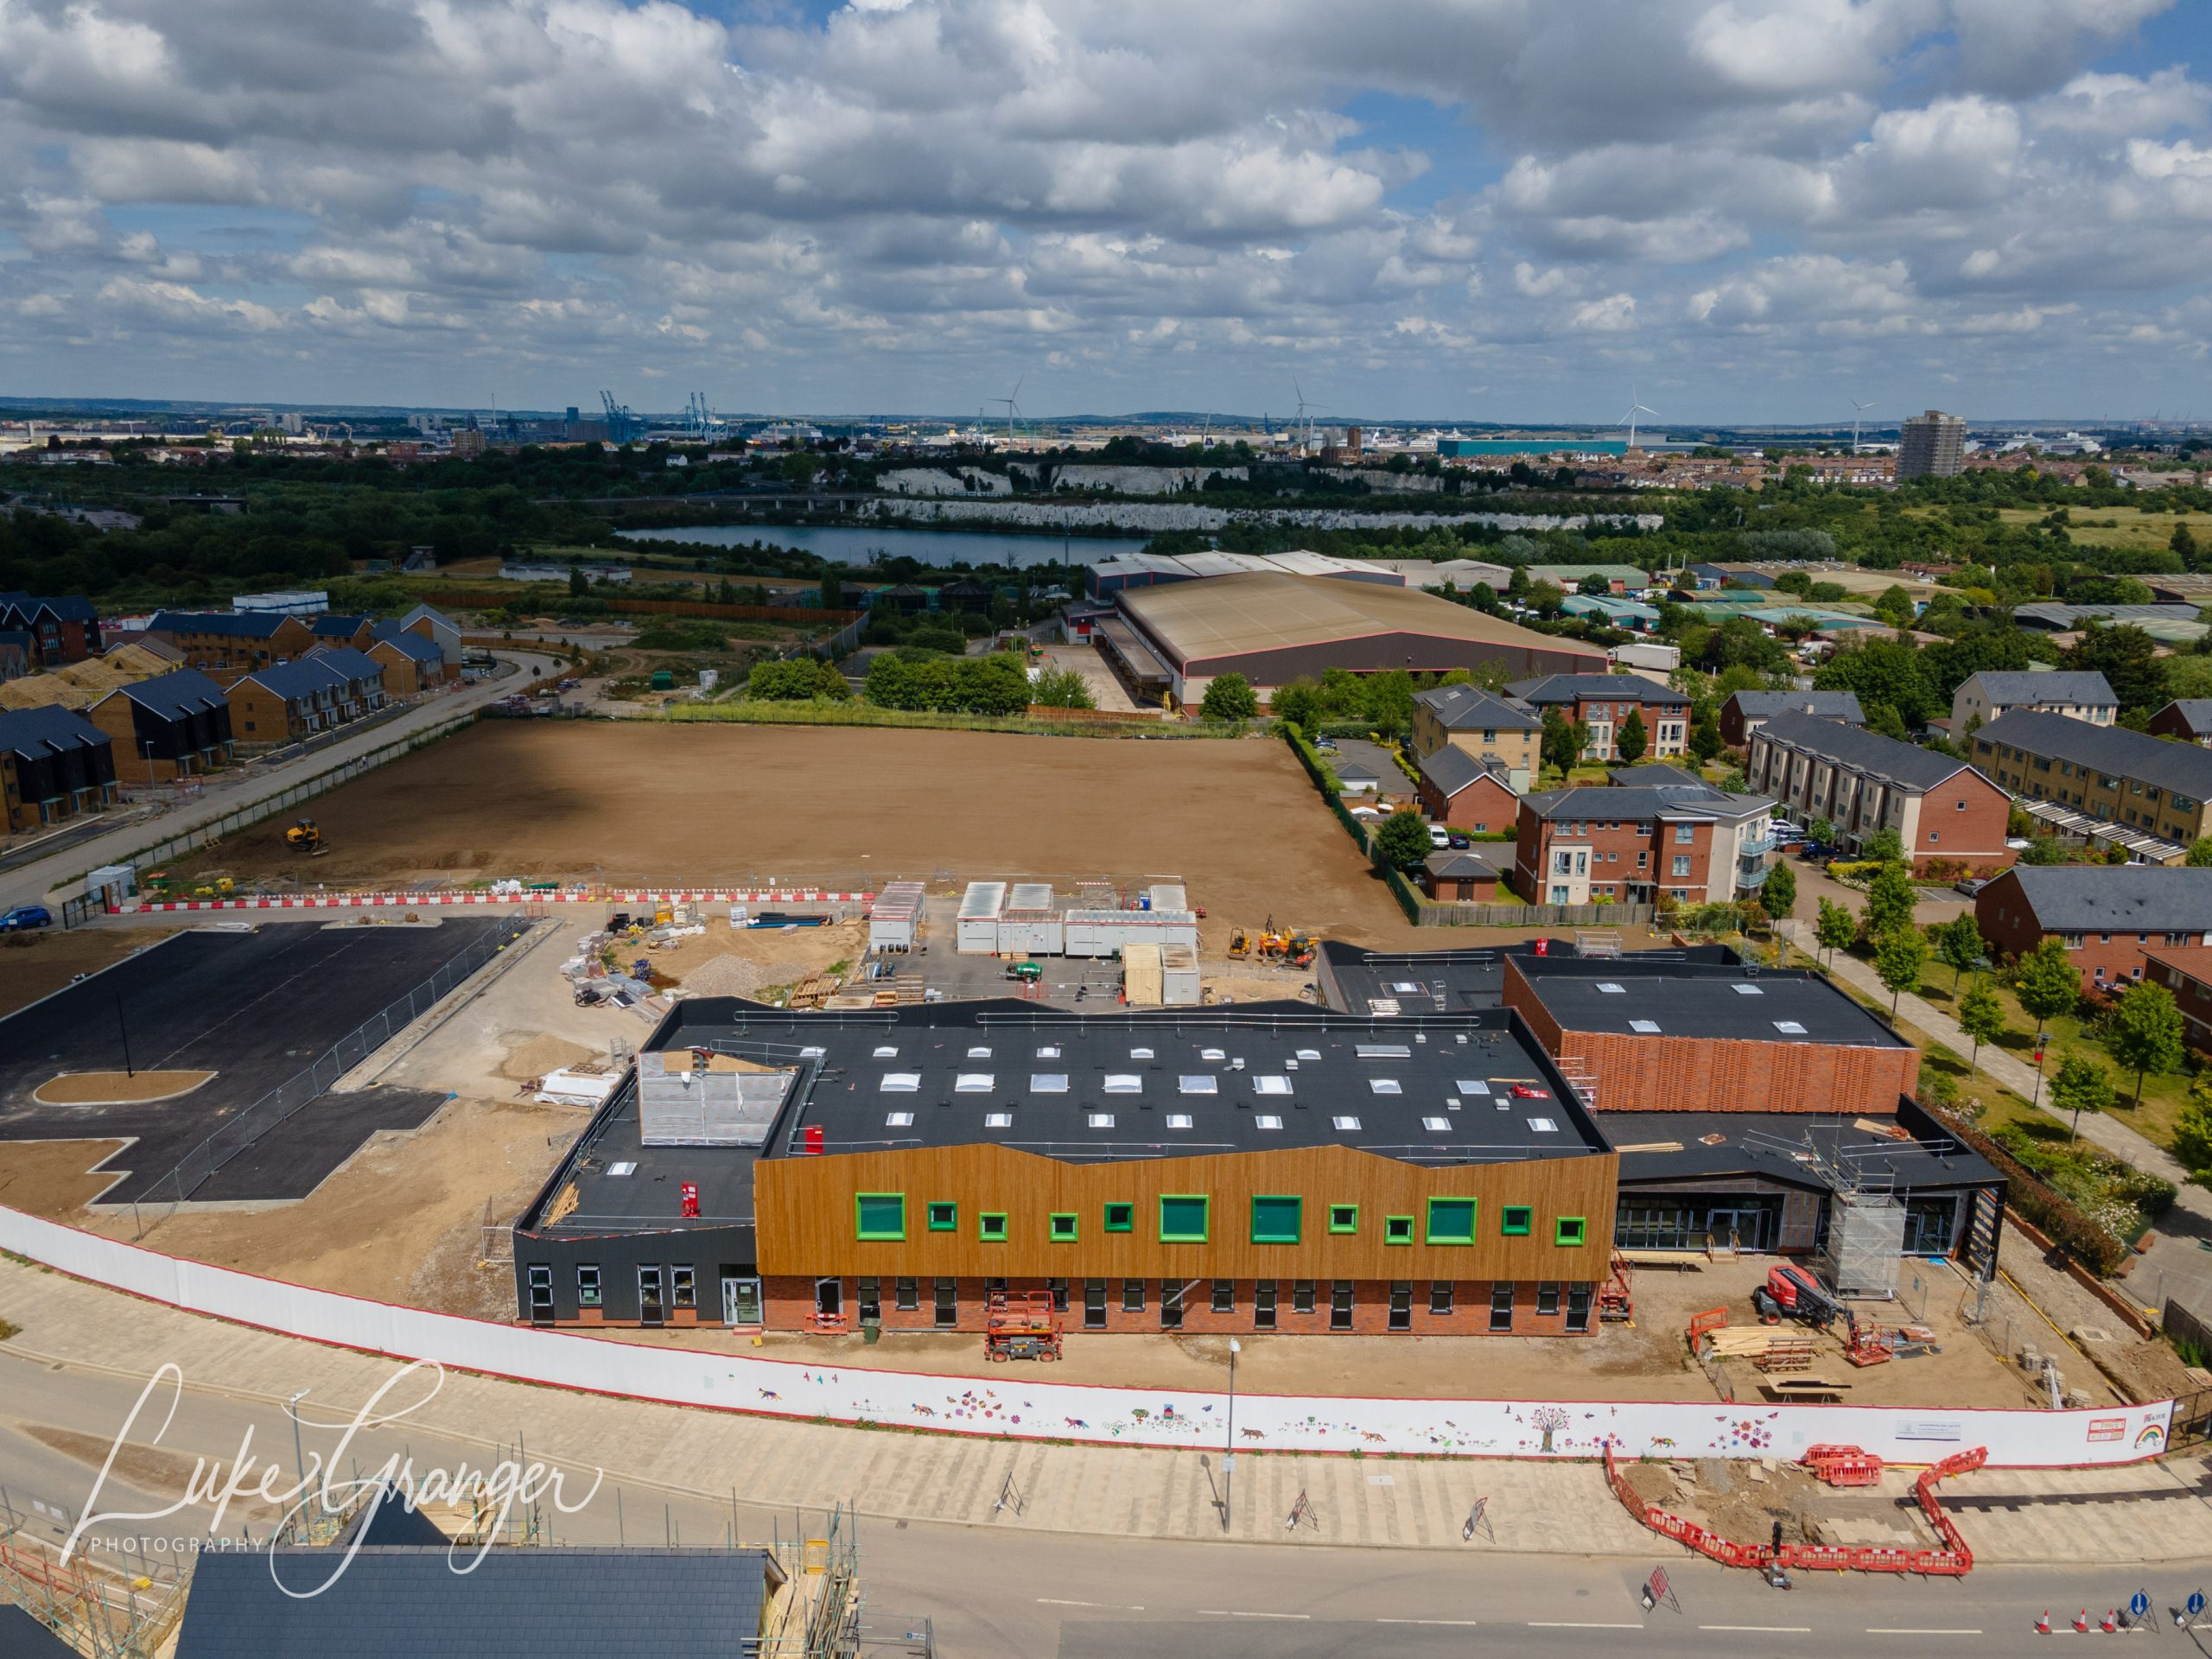 springhead-park-primary-school from a drone